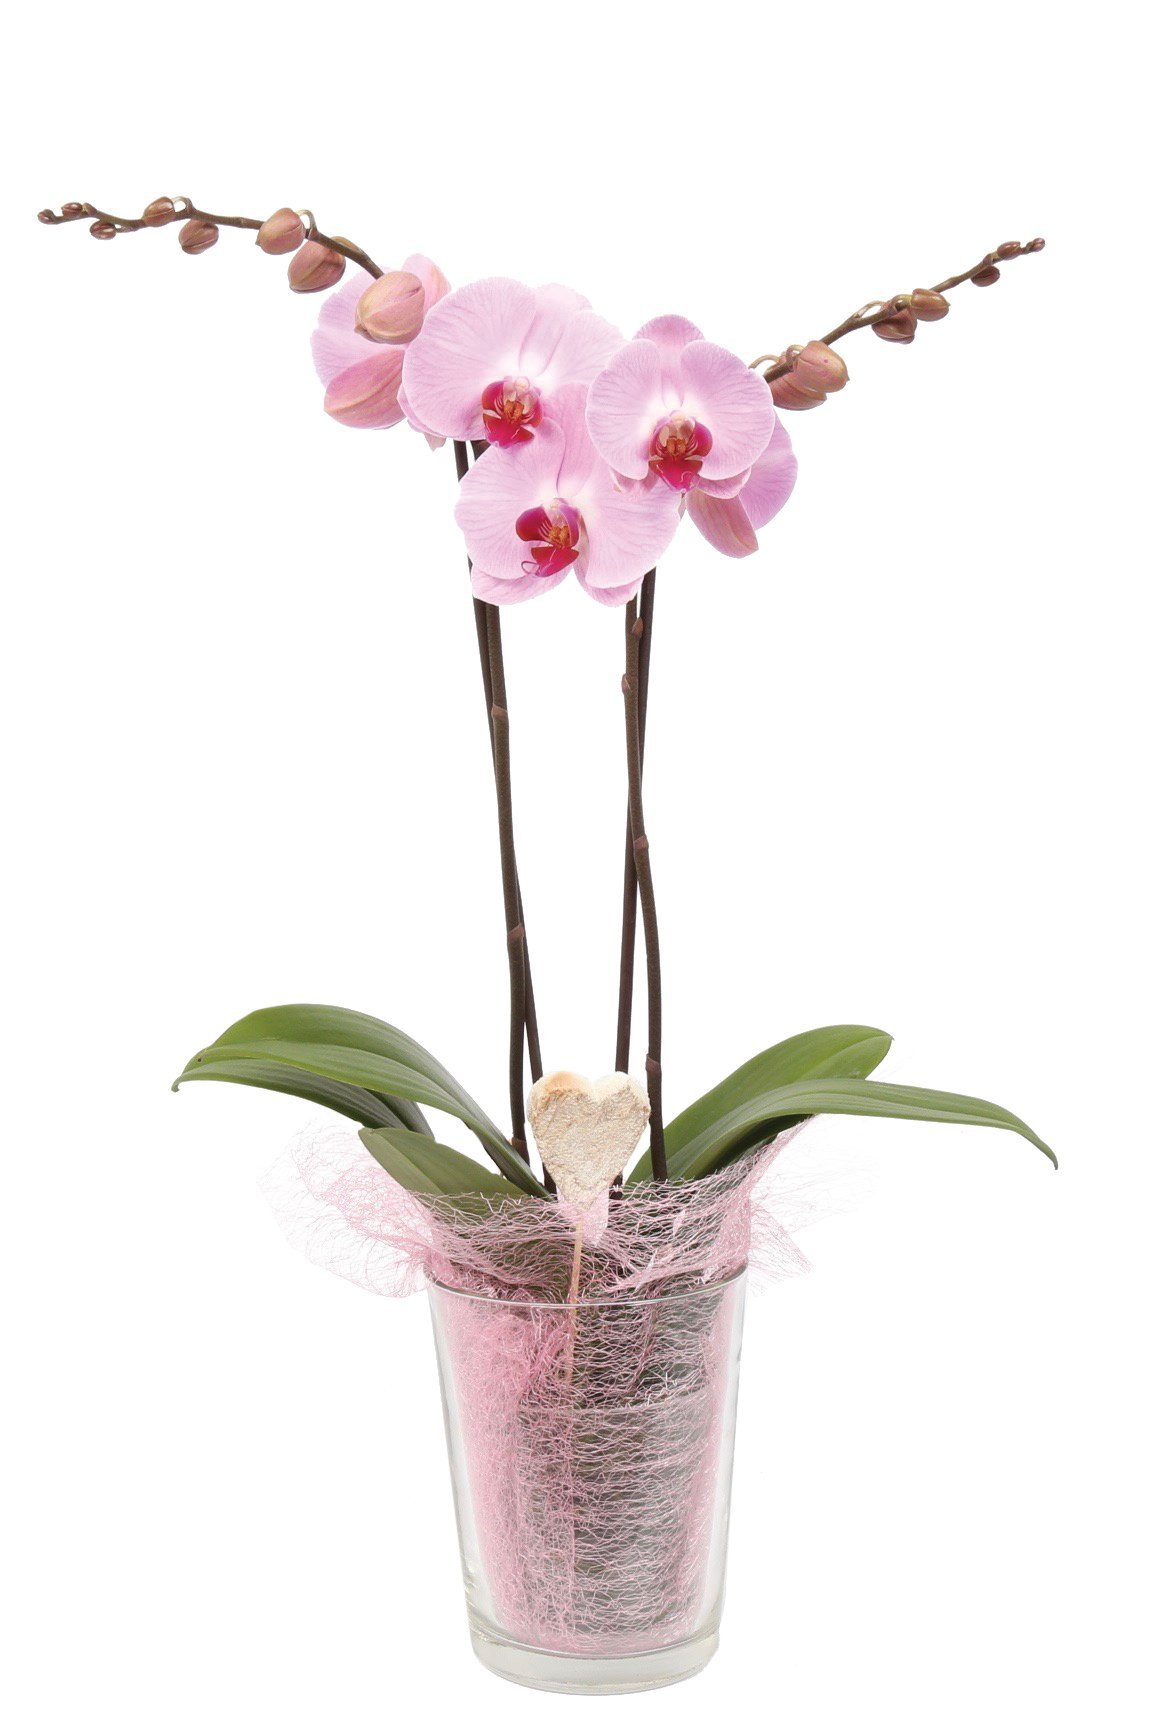 Color Orchids Live Holiday Double Stem phalaenopsis Orchid Plant in Glass Pot, 20''-24'' Tall, Pink Valentines with Heart Pick